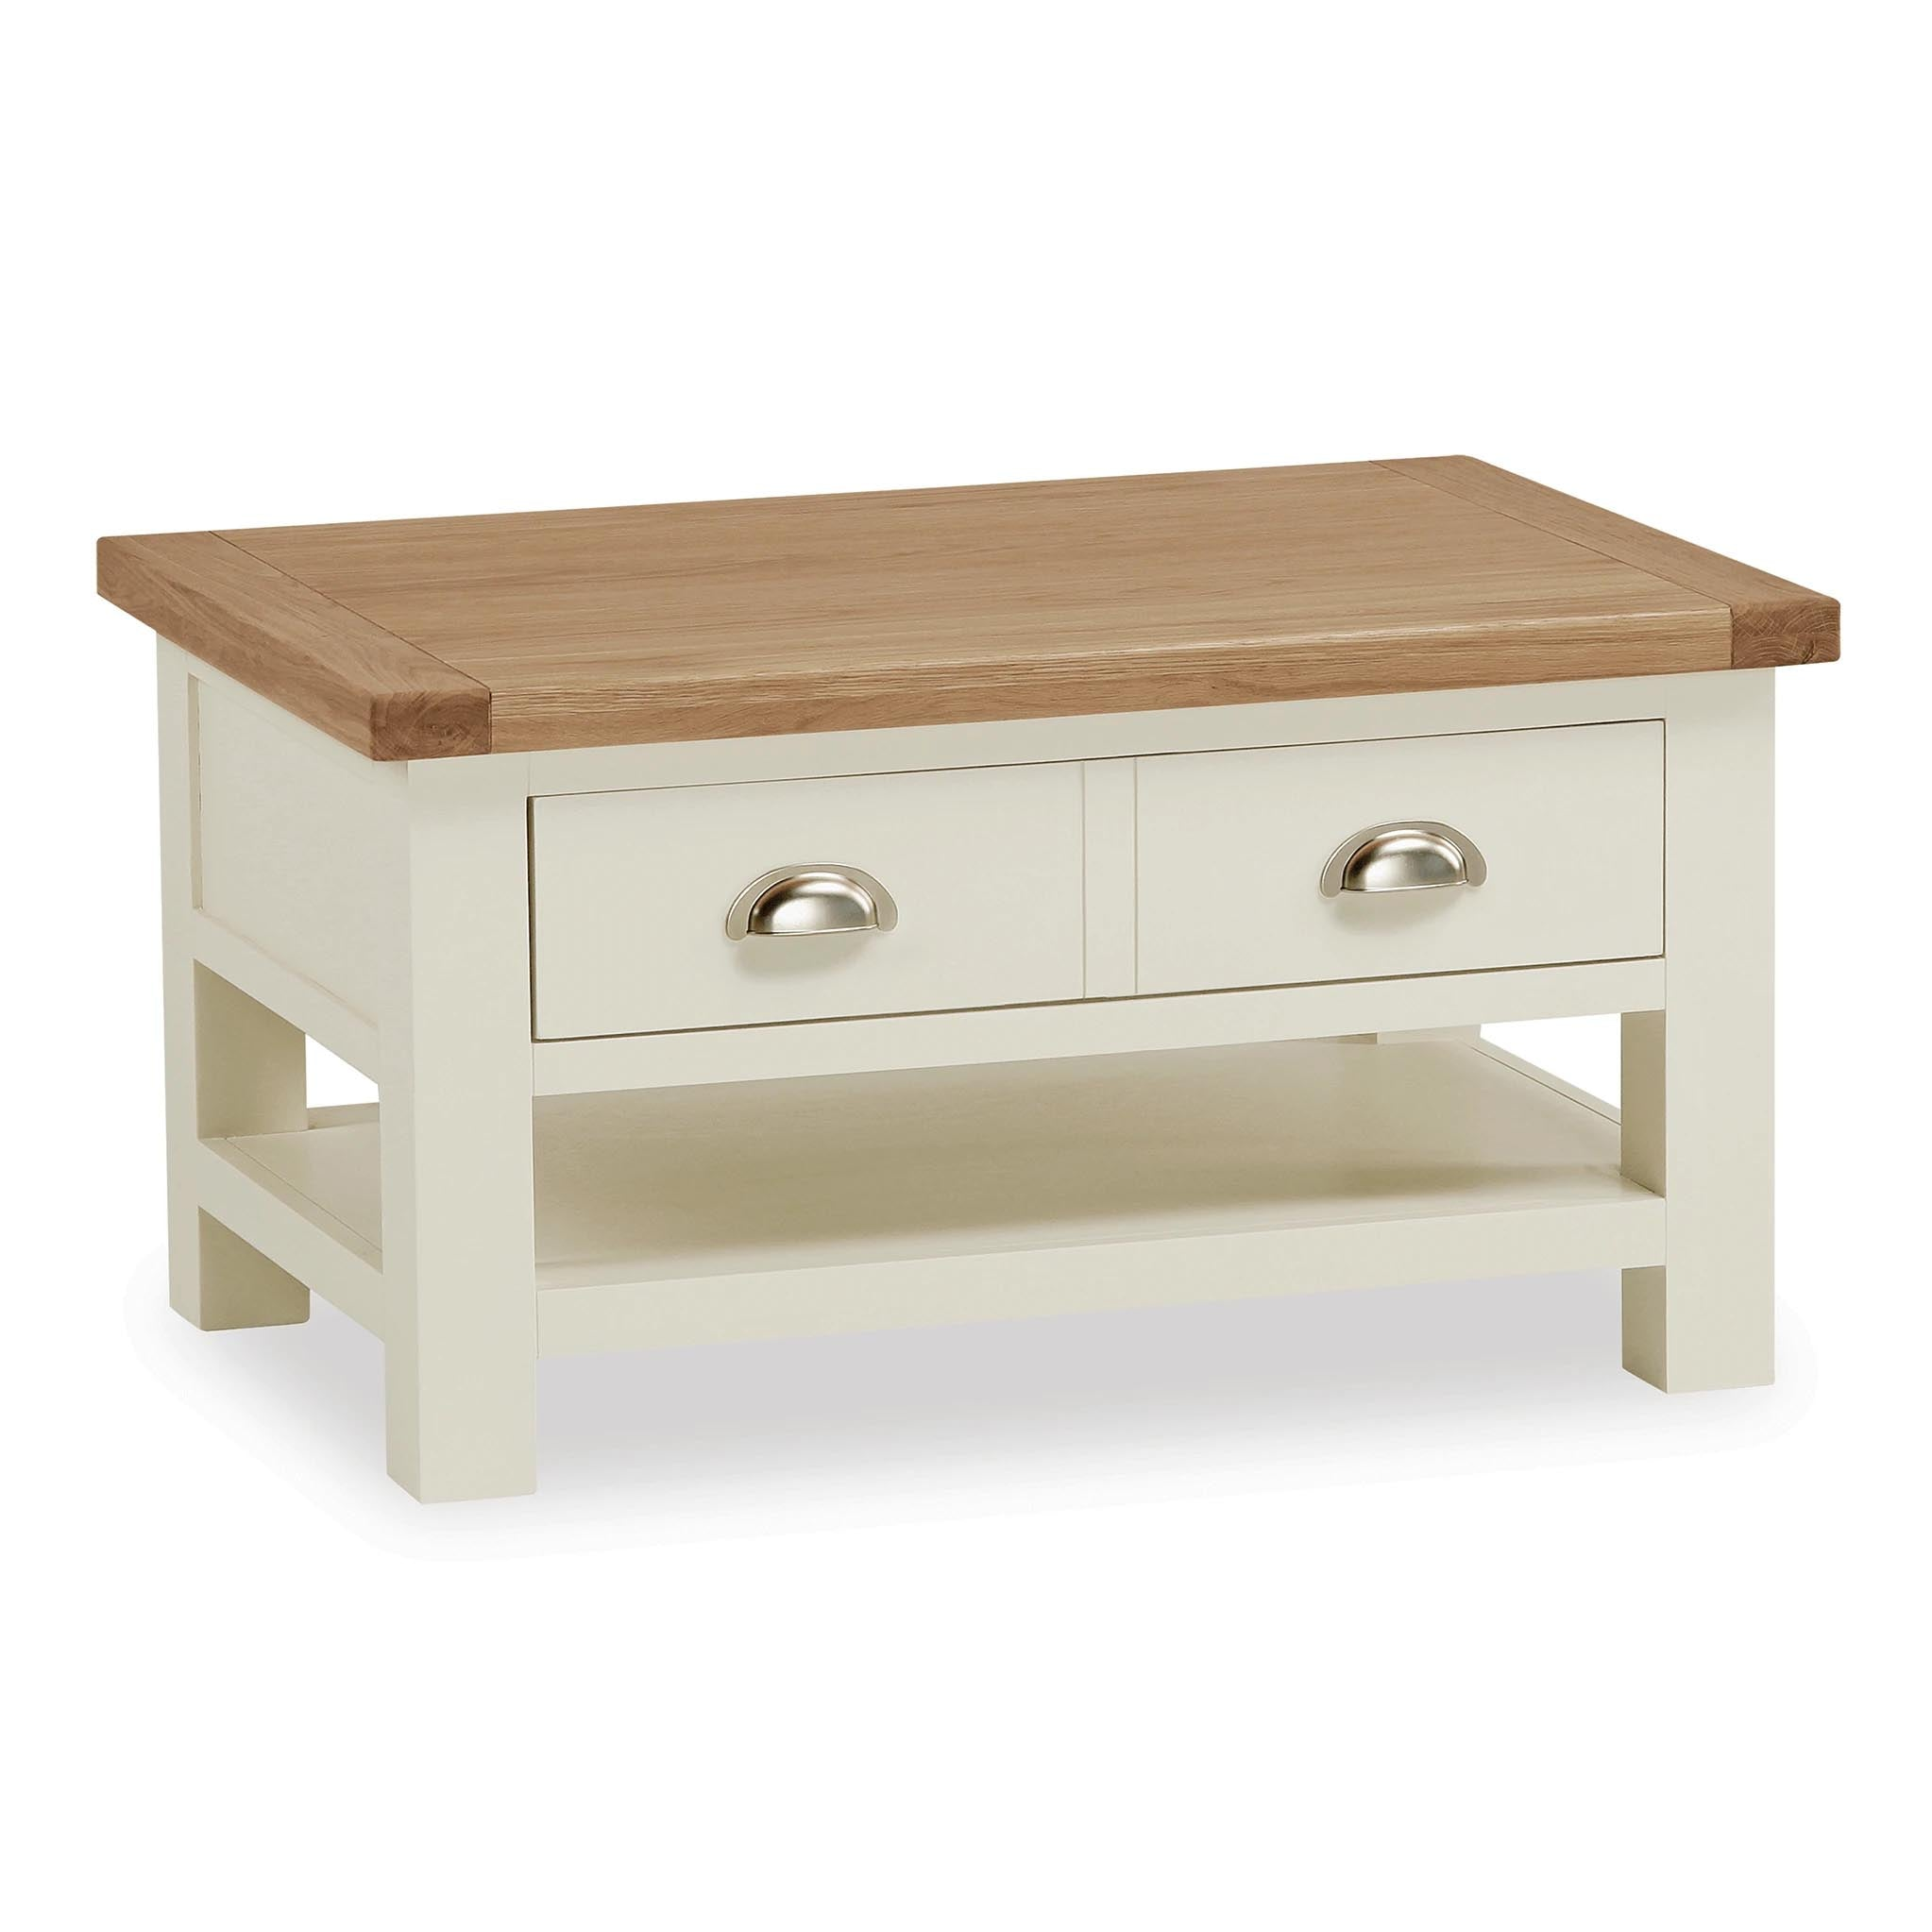 Daymer Cream Painted Small Coffee Table 1 Drawer Solid Wood Roseland Furniture